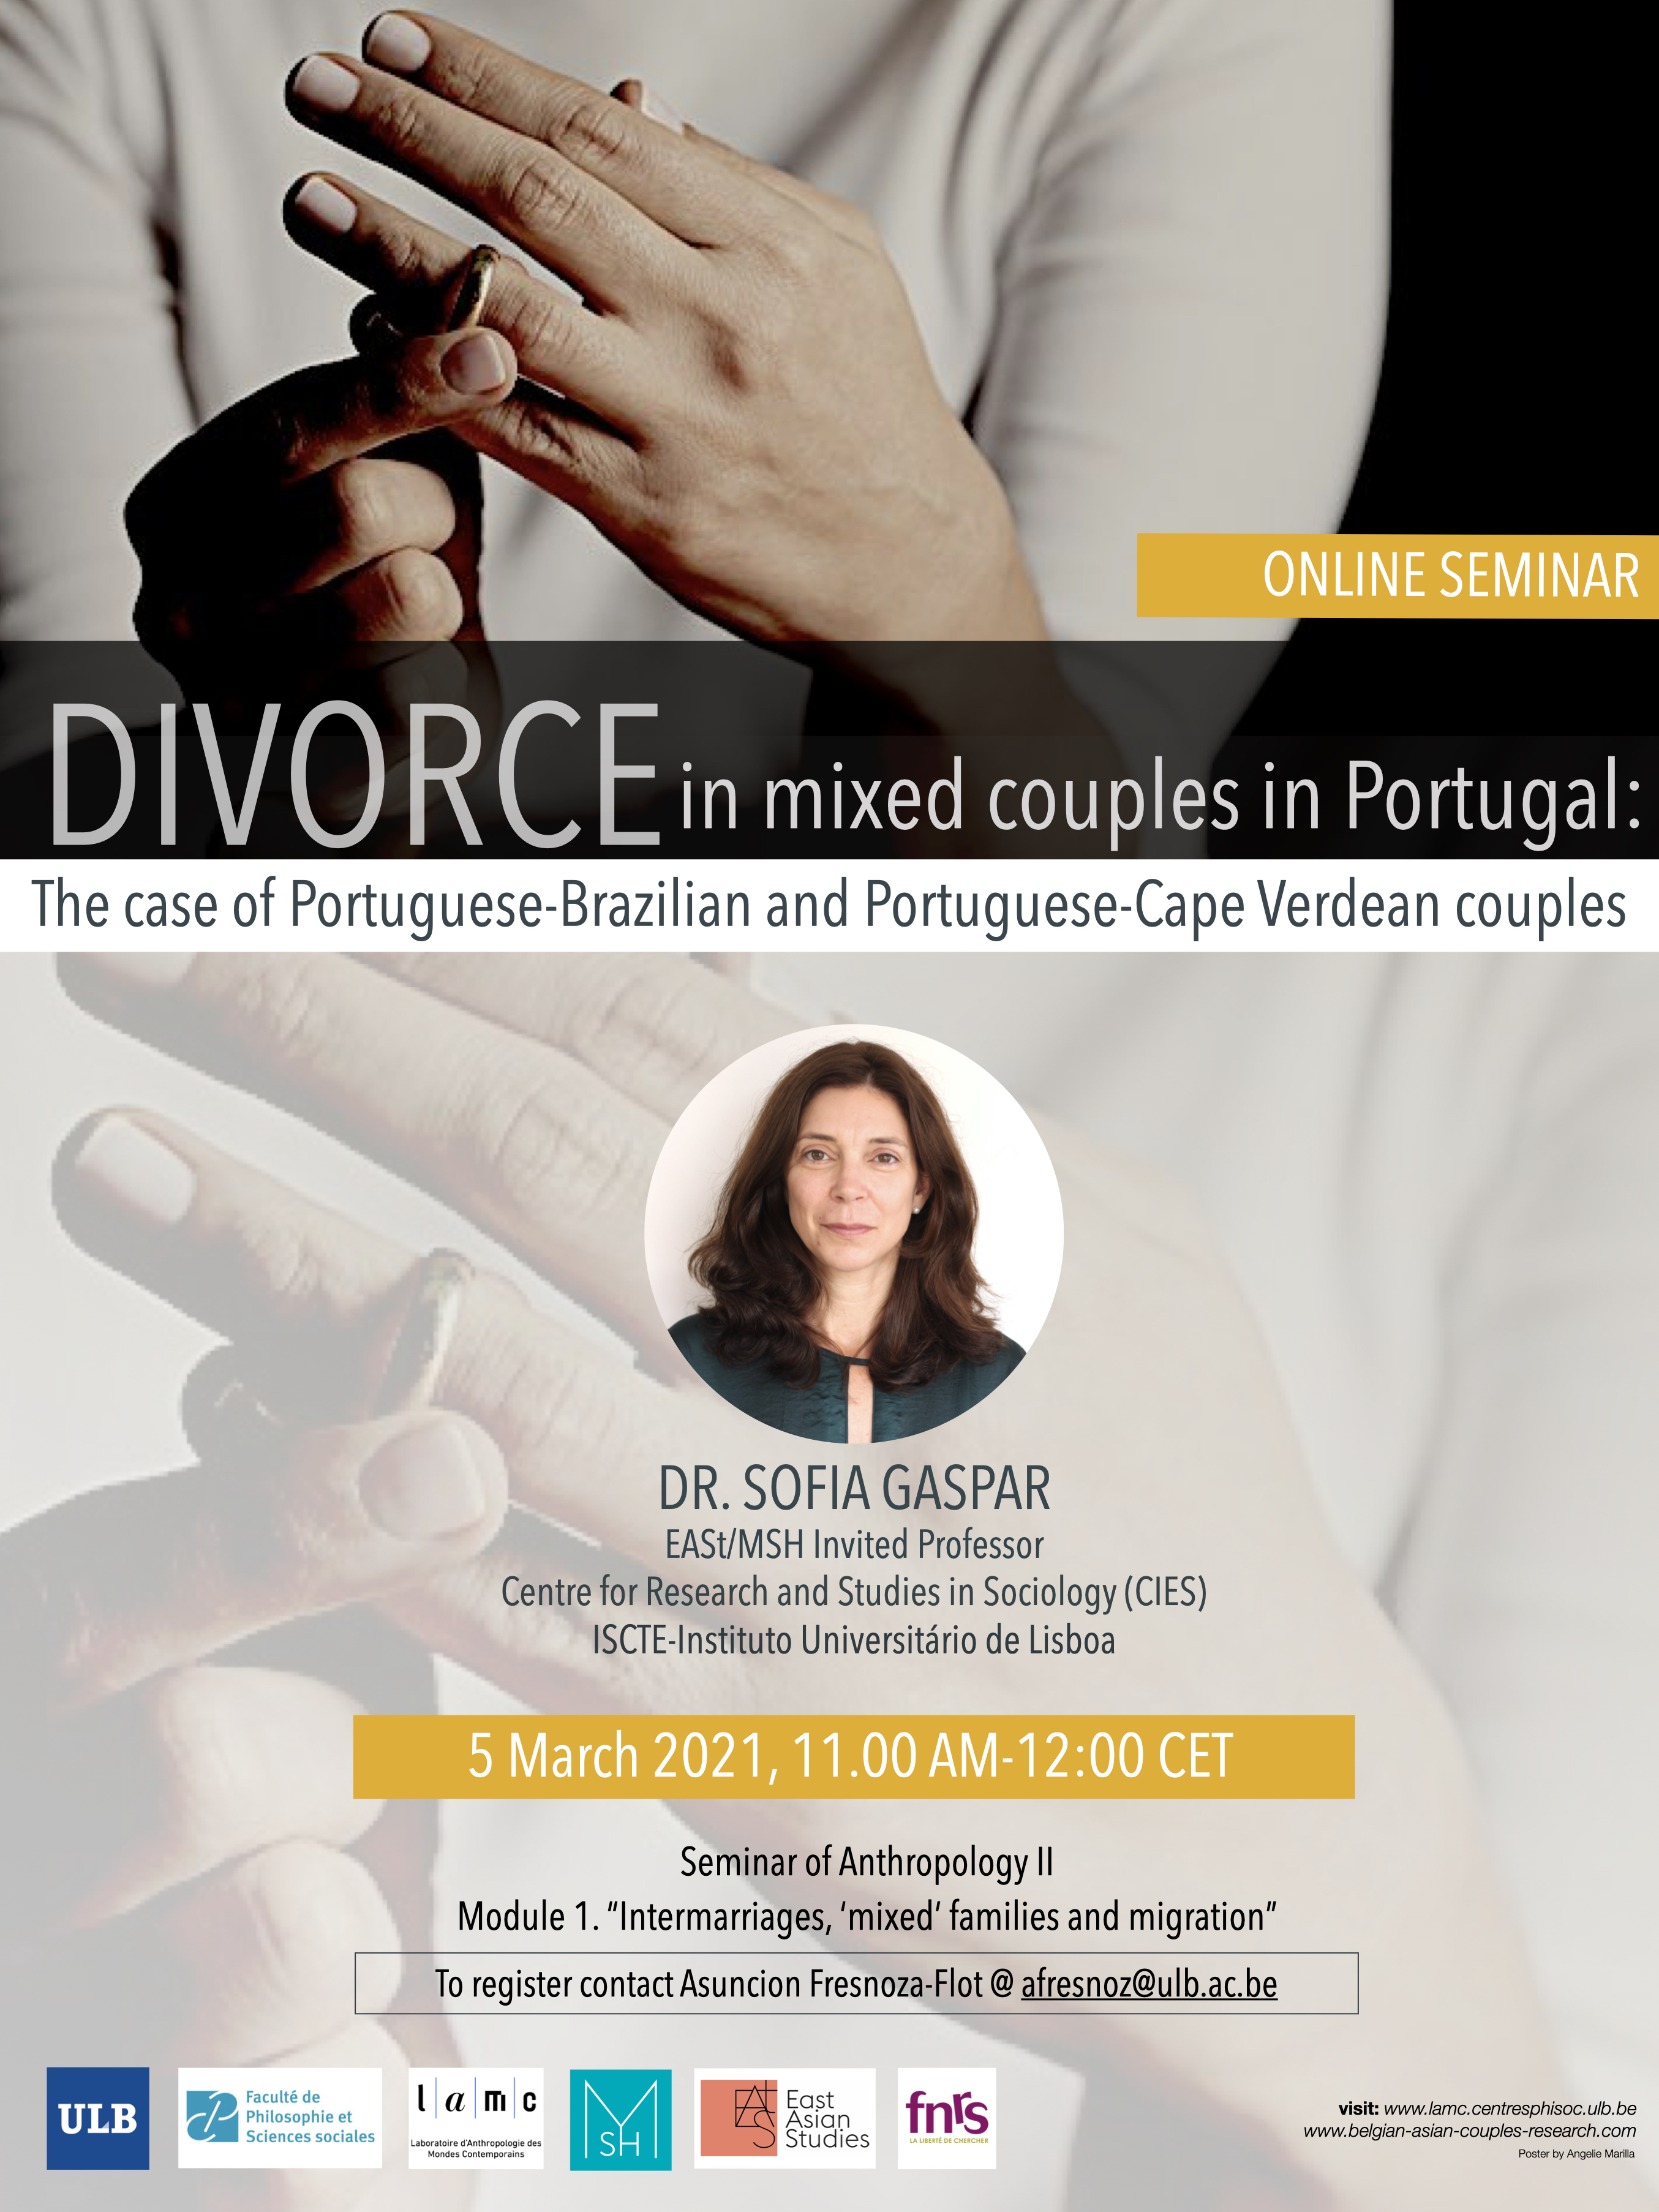 Divorce in mixed couples in Portugal: the case of Portuguese-Brazilian and Portuguese-Cap Verdean people